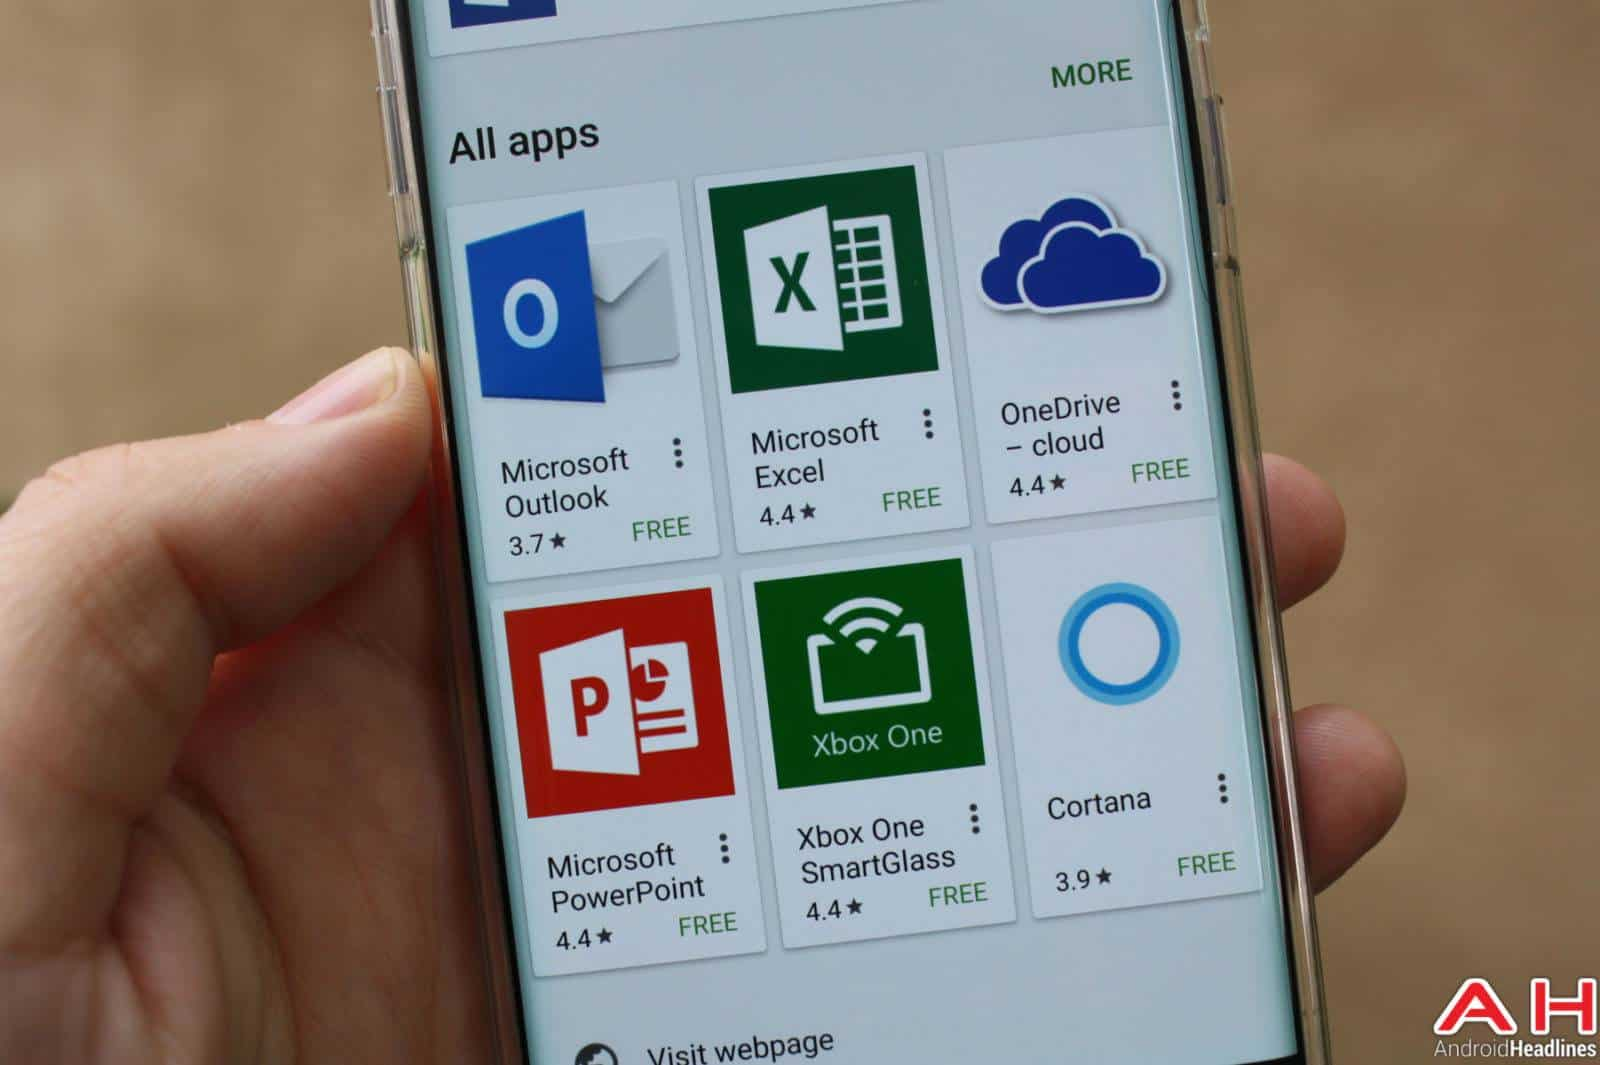 Microsoft Android Smartphone - Microsoft updates word excel powerpoint on android